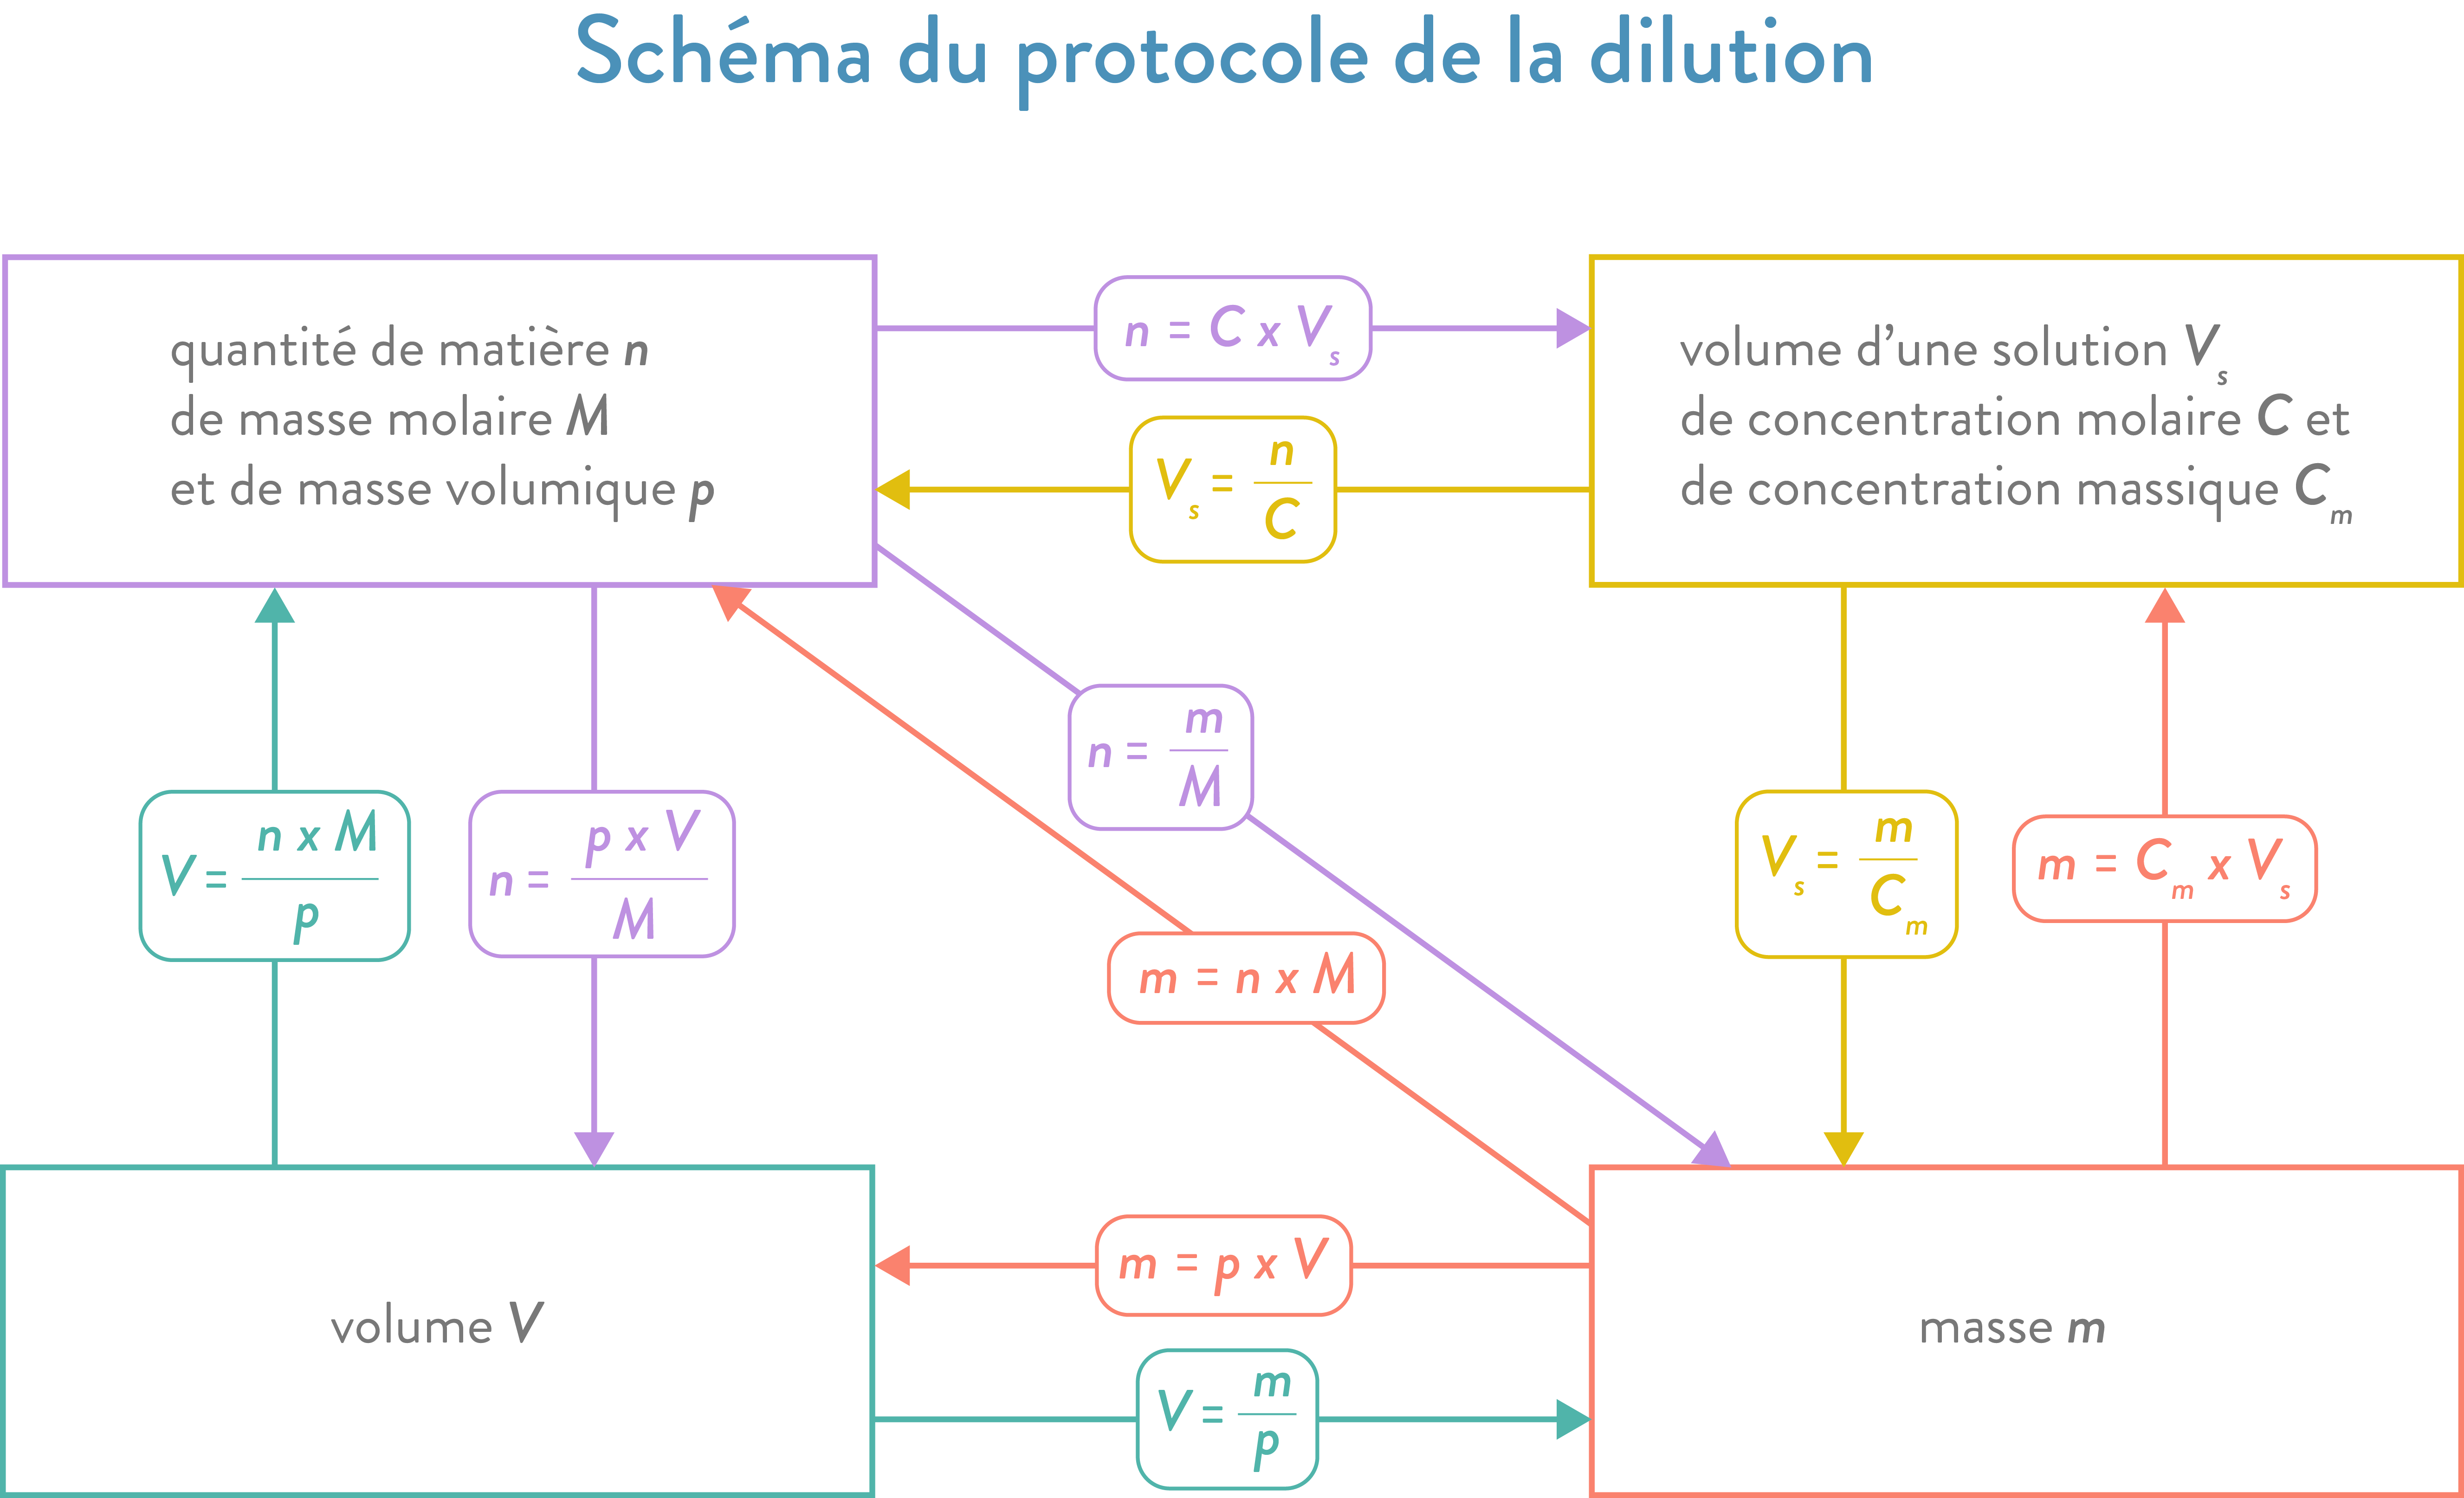 how to draw a dilution scheme